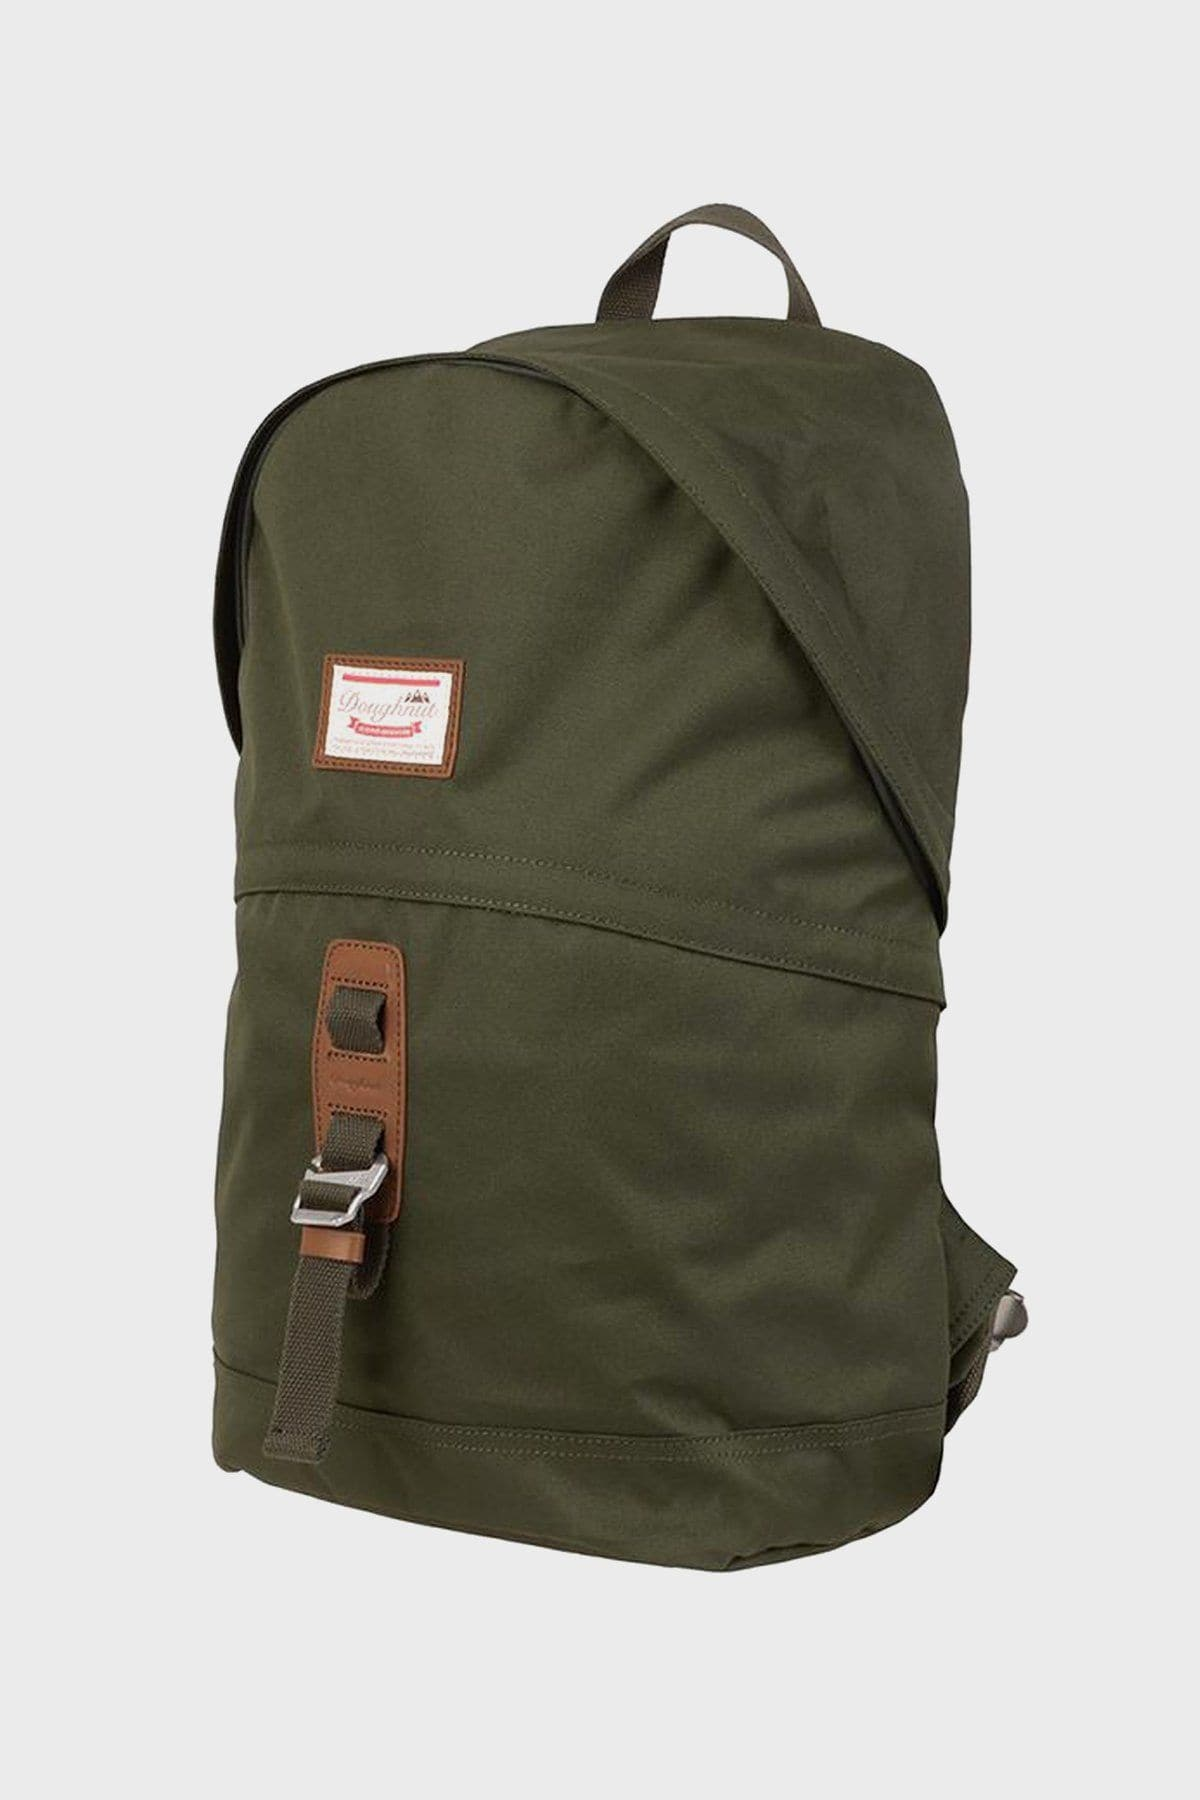 Army Green Hugo Backpack - Life in Paradigm Menswear London